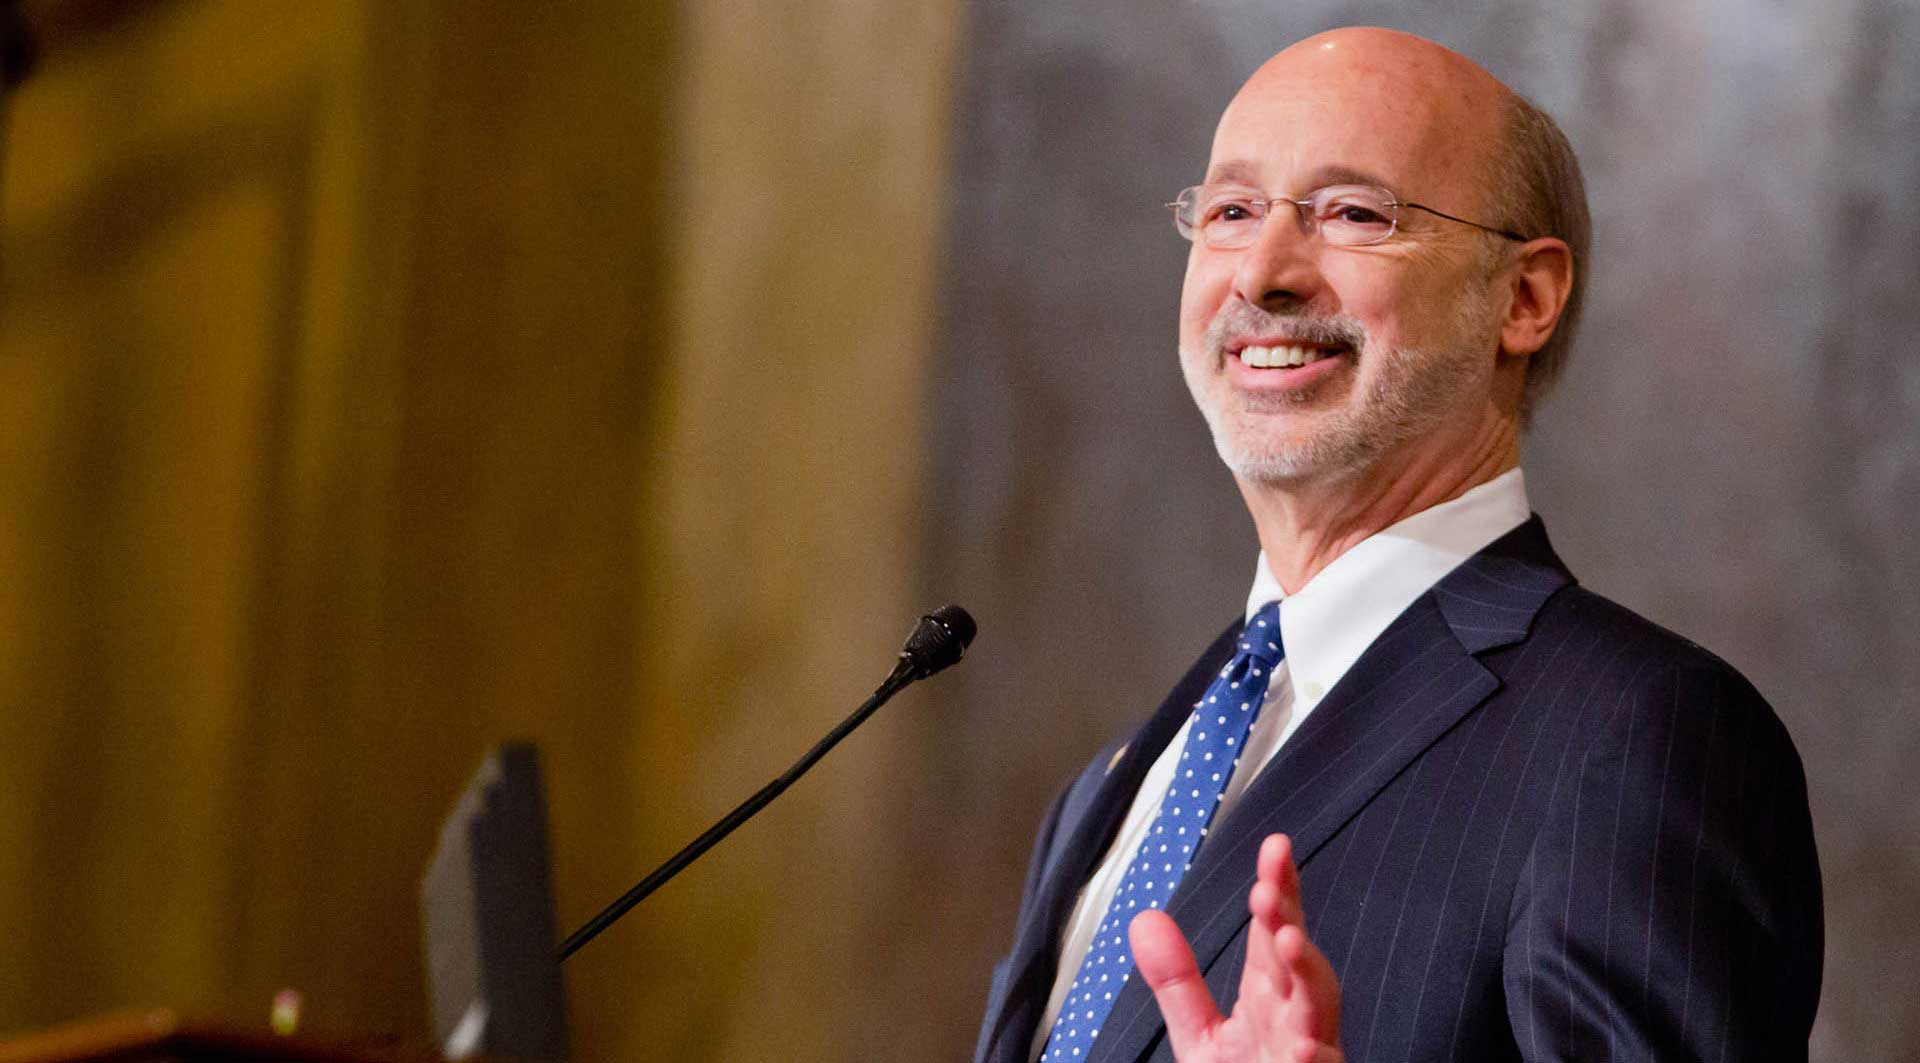 Image of Governor Wolf at podium